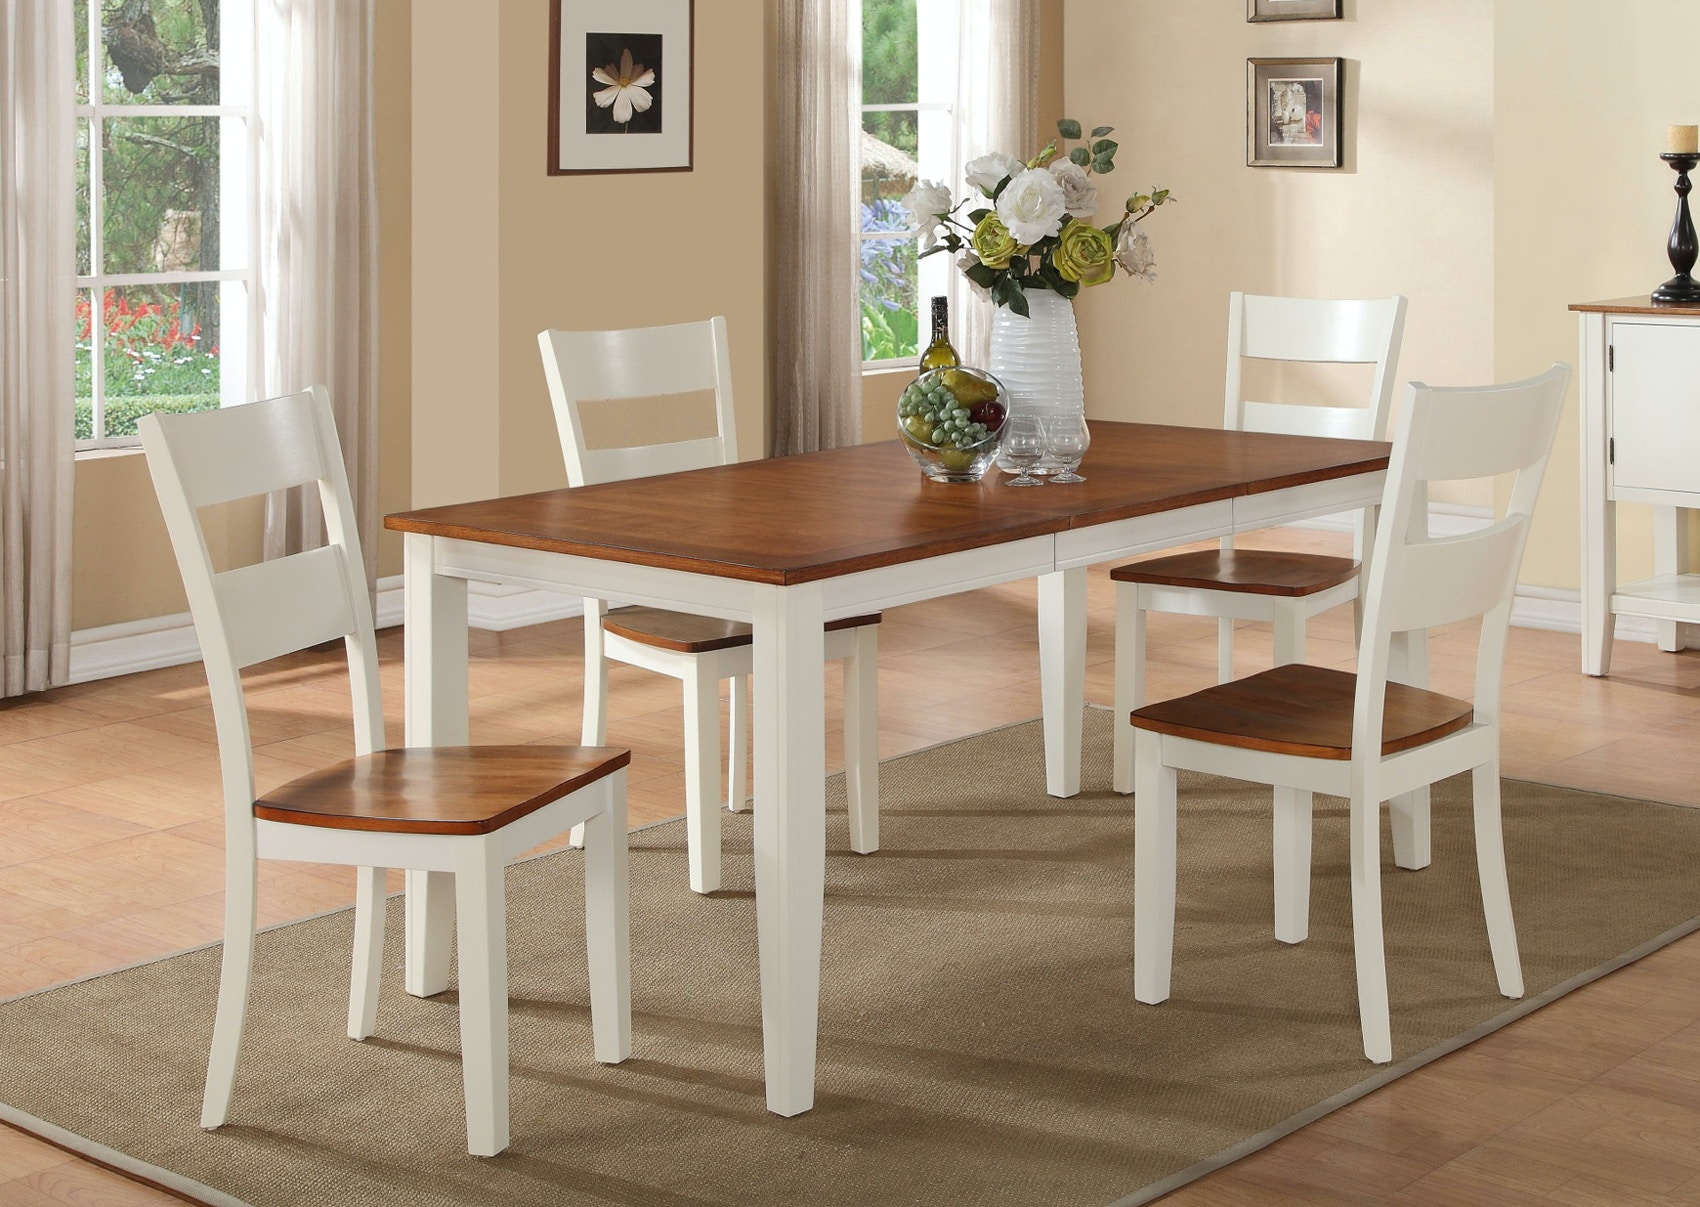 Awesome The Lorain Dining Set (548407) Includes The Table And Four Side Chairs.  Lorain Dining Set 548407 Holland House